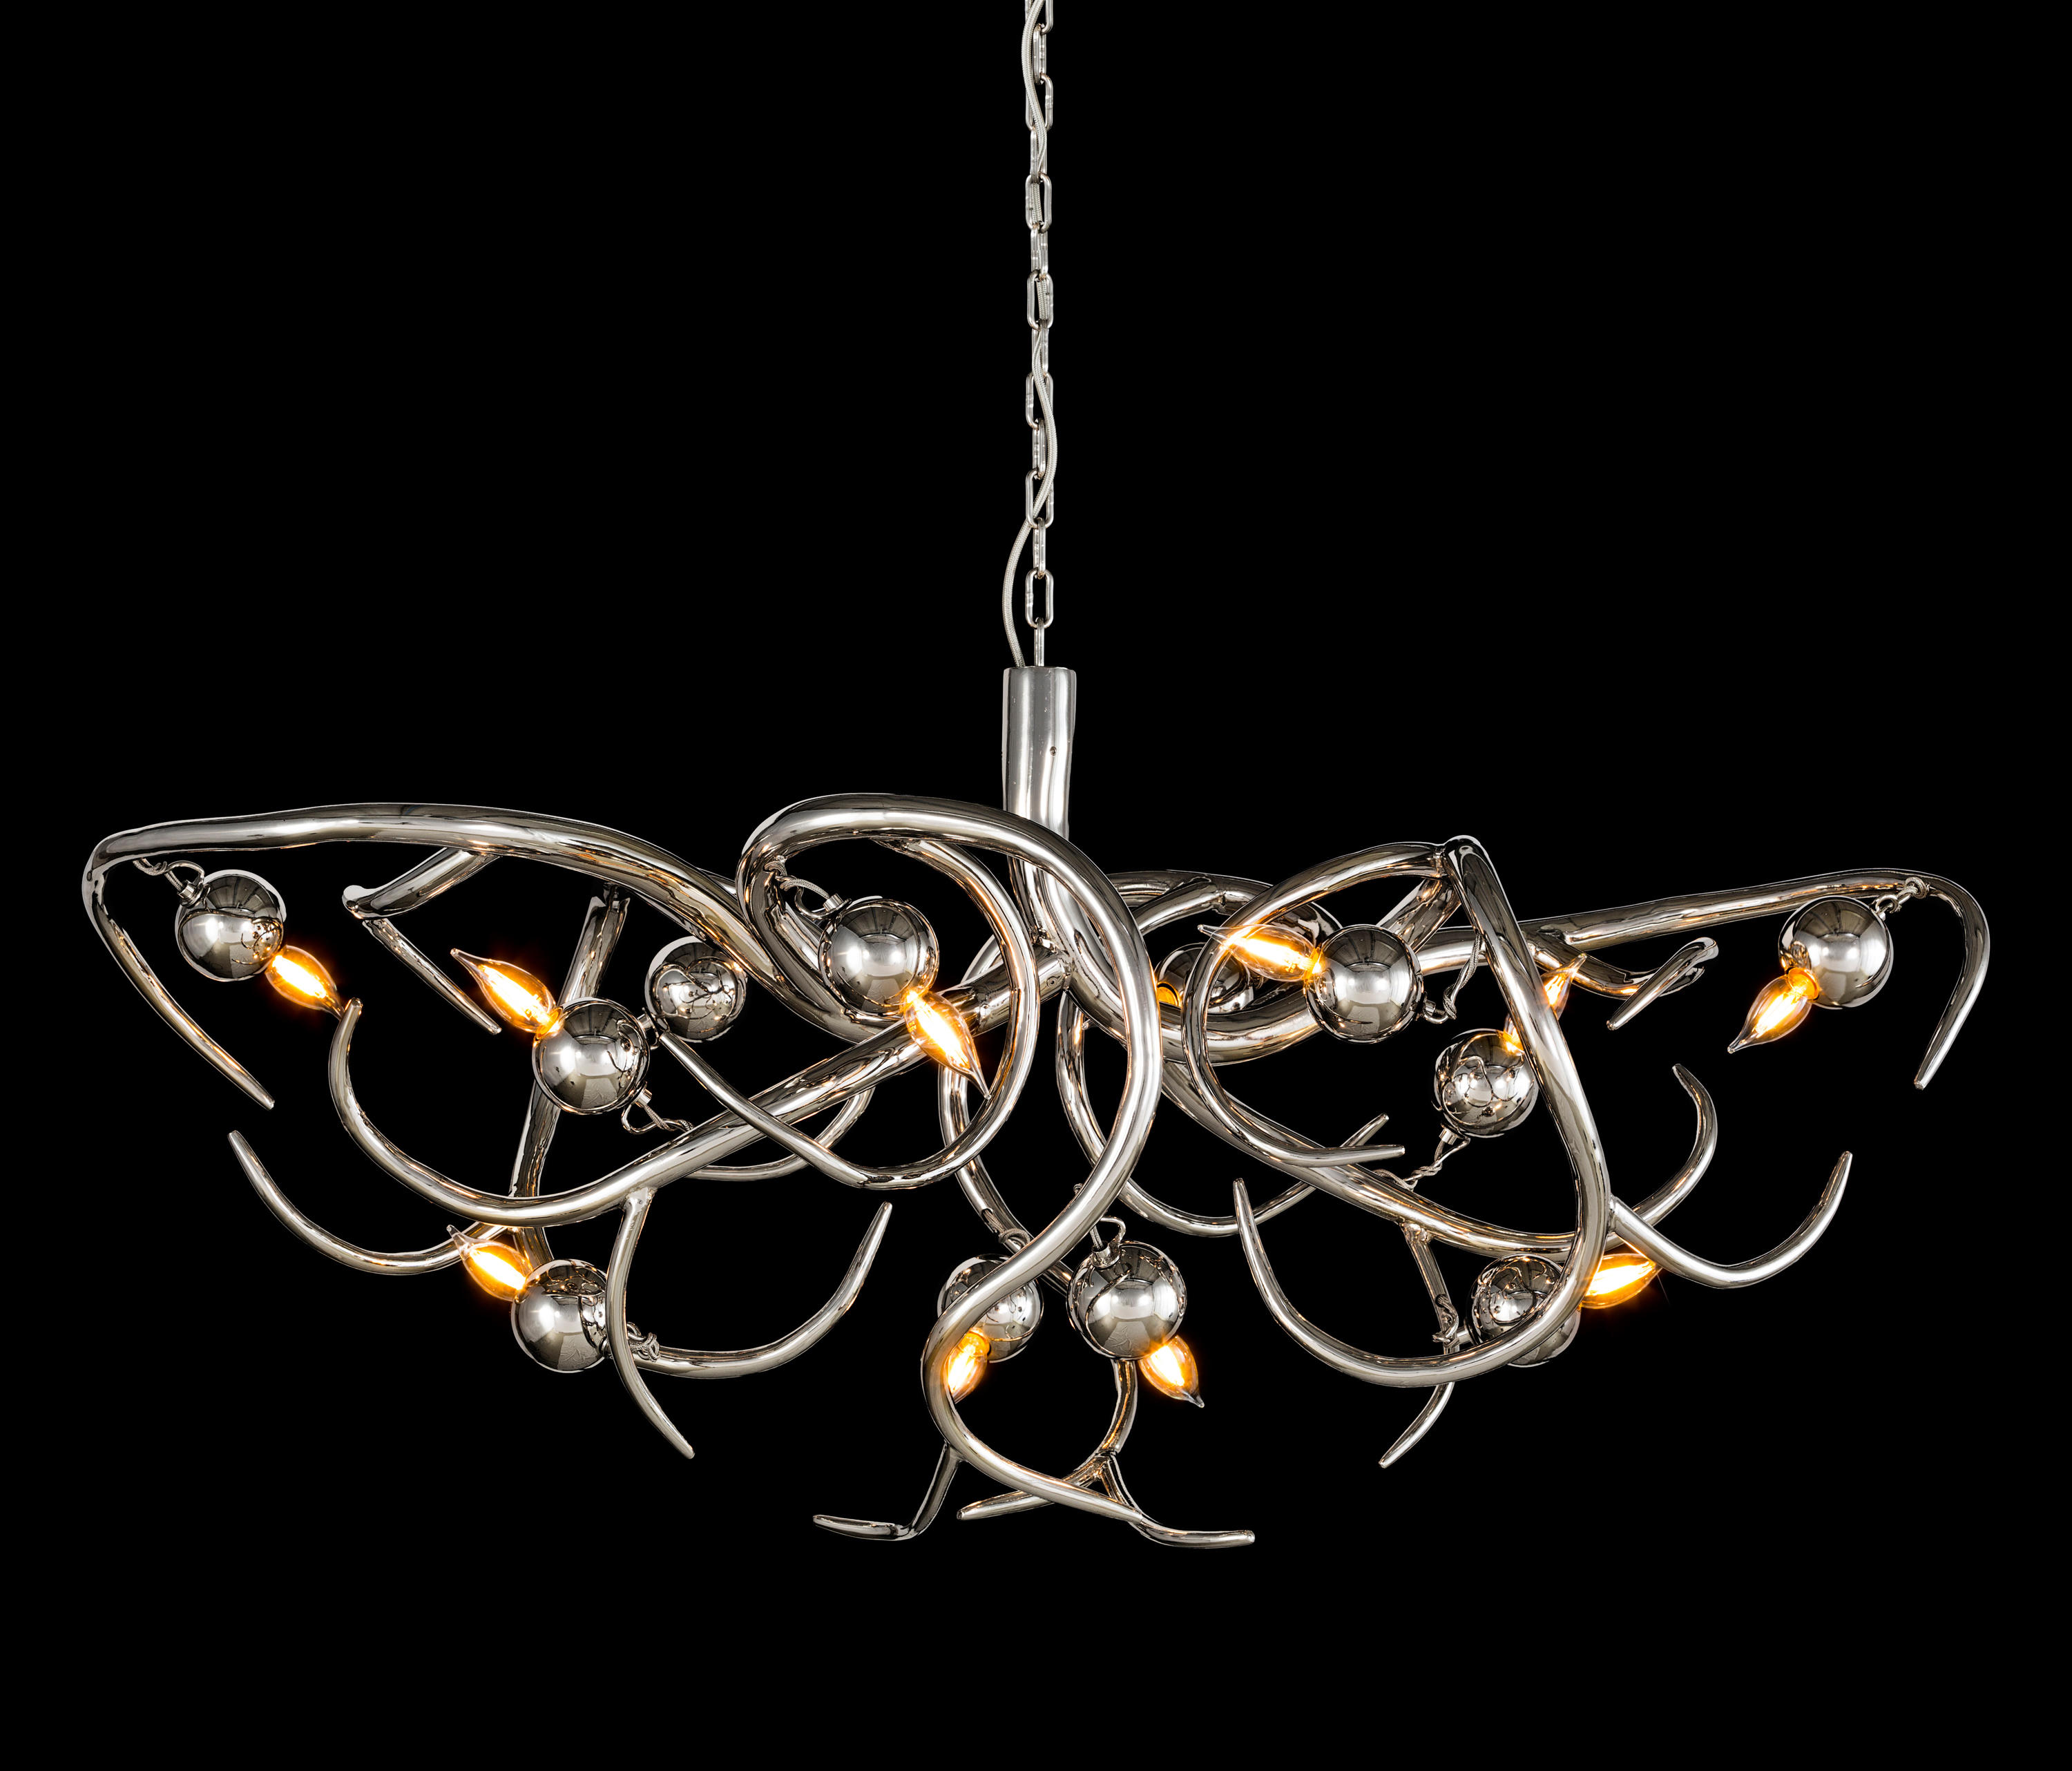 eve chandelier oval ceiling suspended chandeliers from. Black Bedroom Furniture Sets. Home Design Ideas